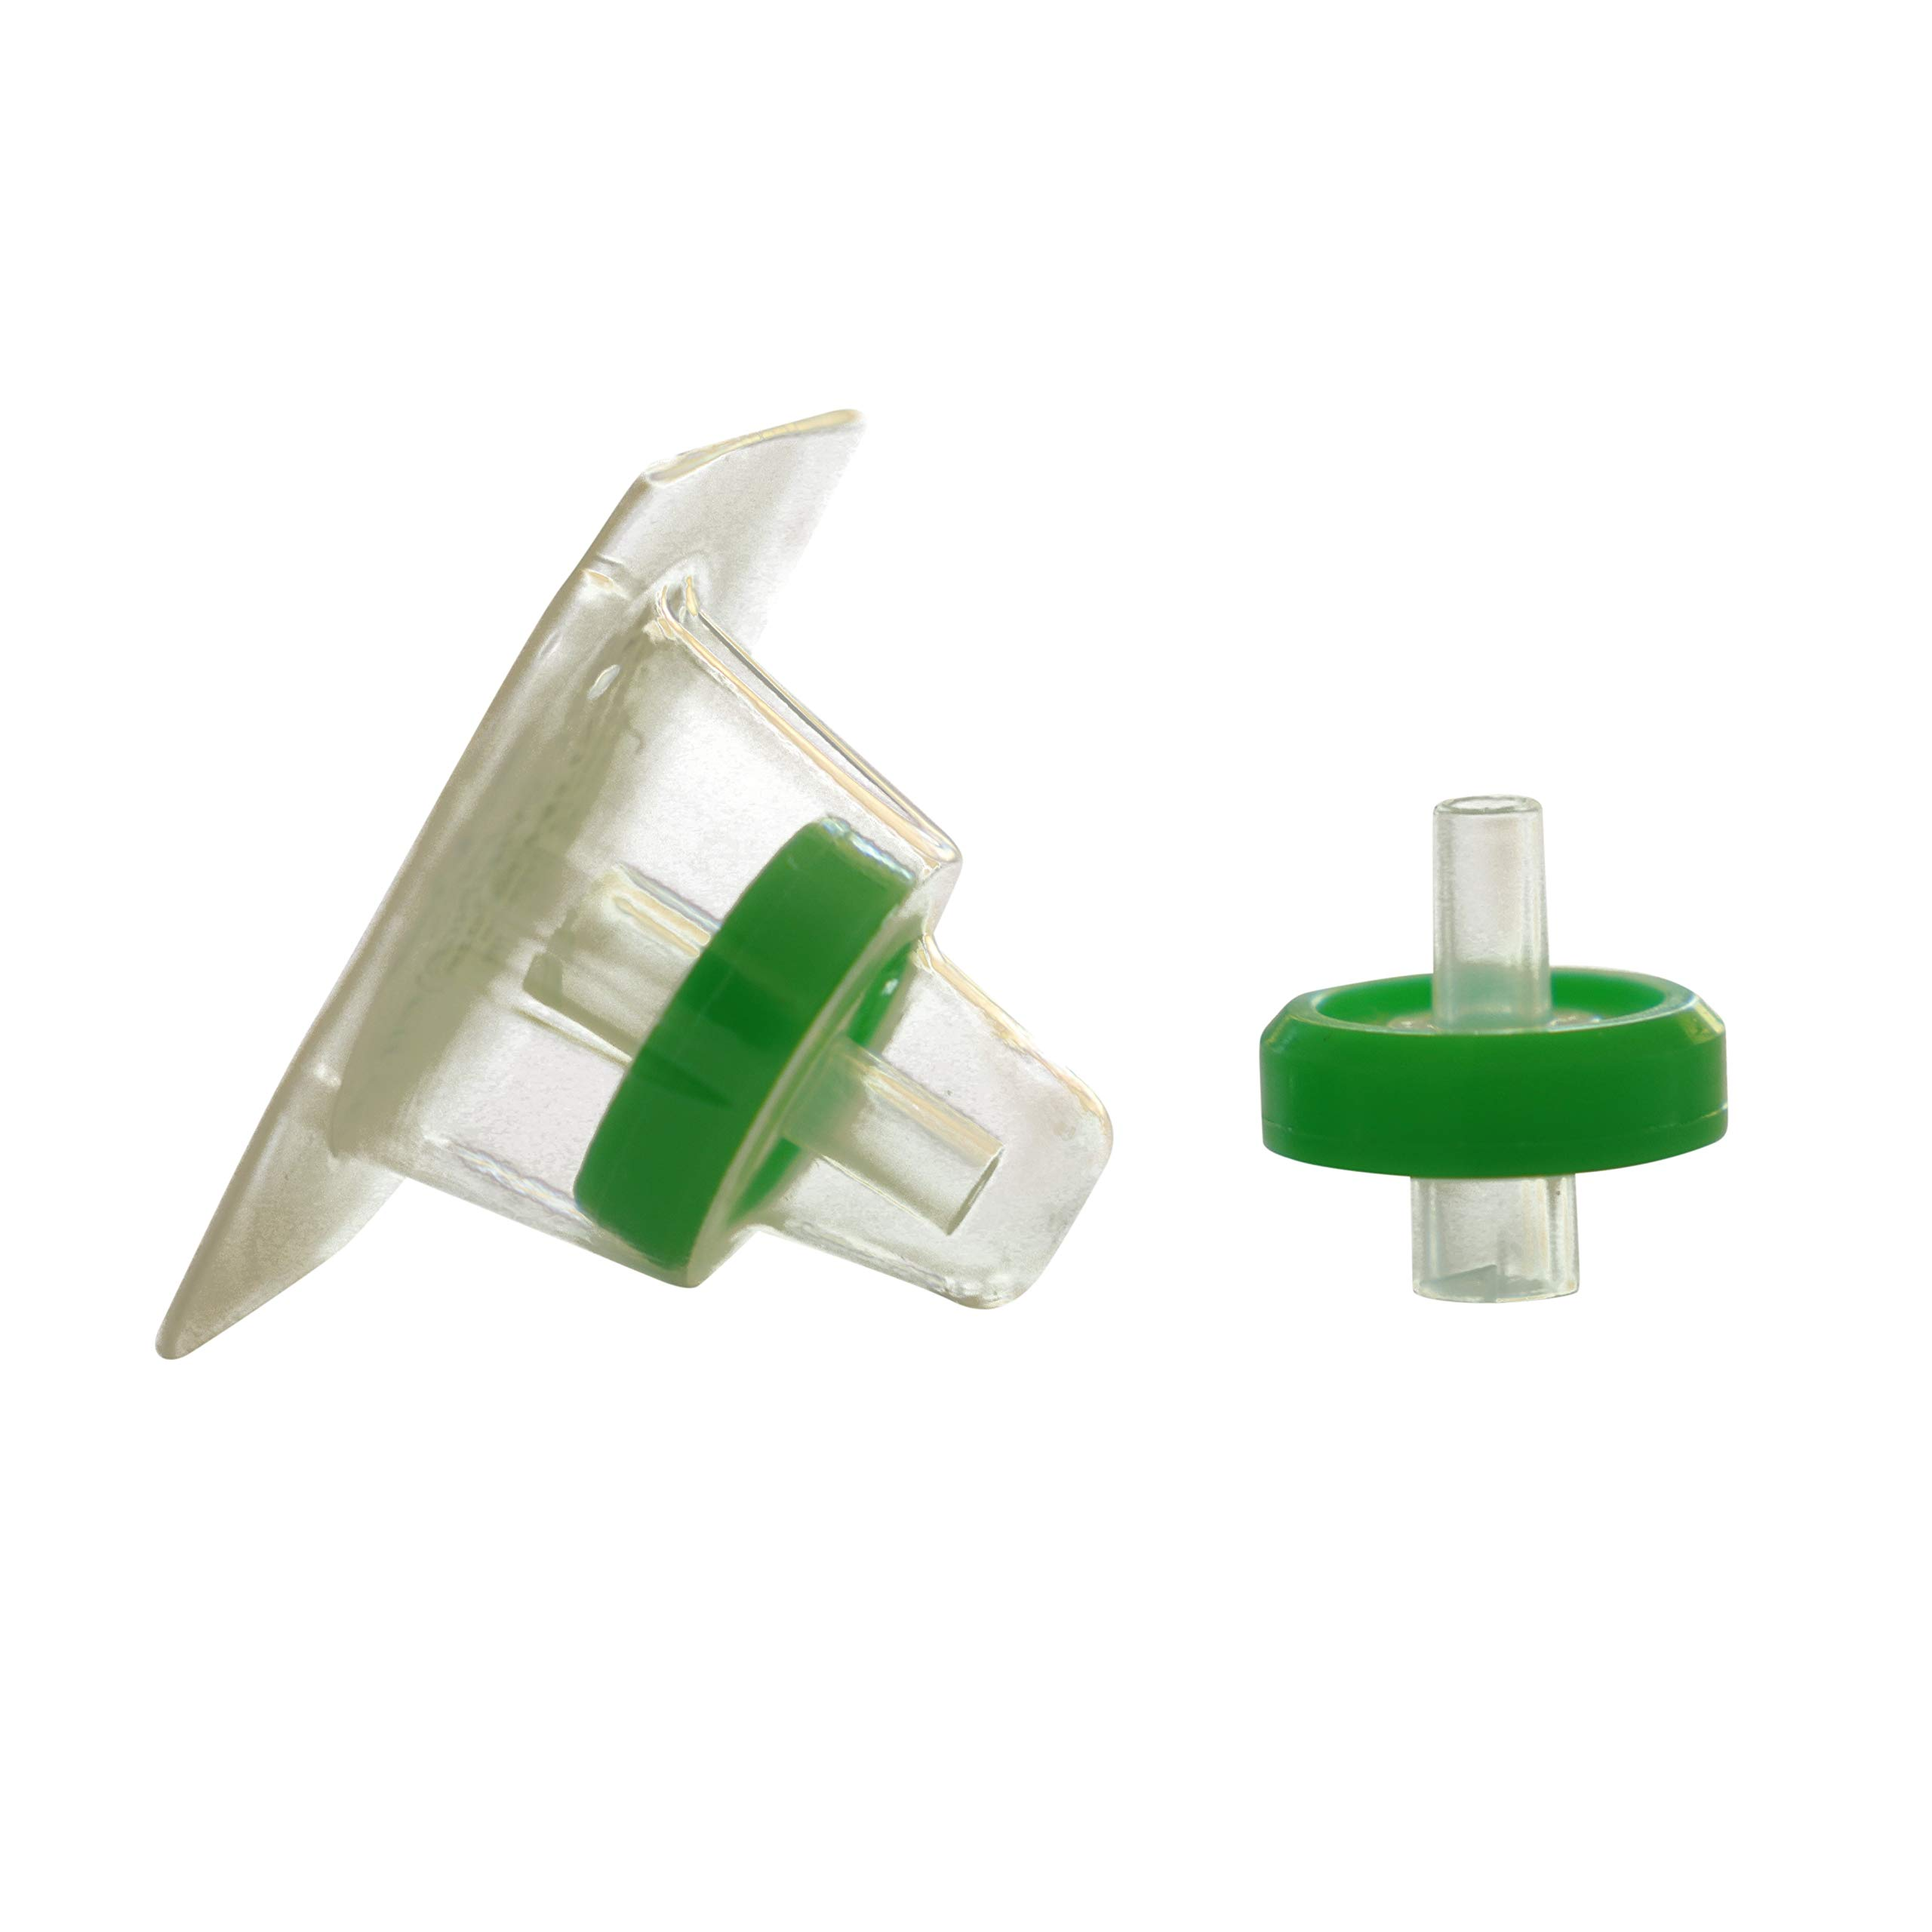 Simsii Sterile Syringe Filters, PES, Diameter: 13 mm, Pore Size: 0.22 um, Pack of 100 by Simsii